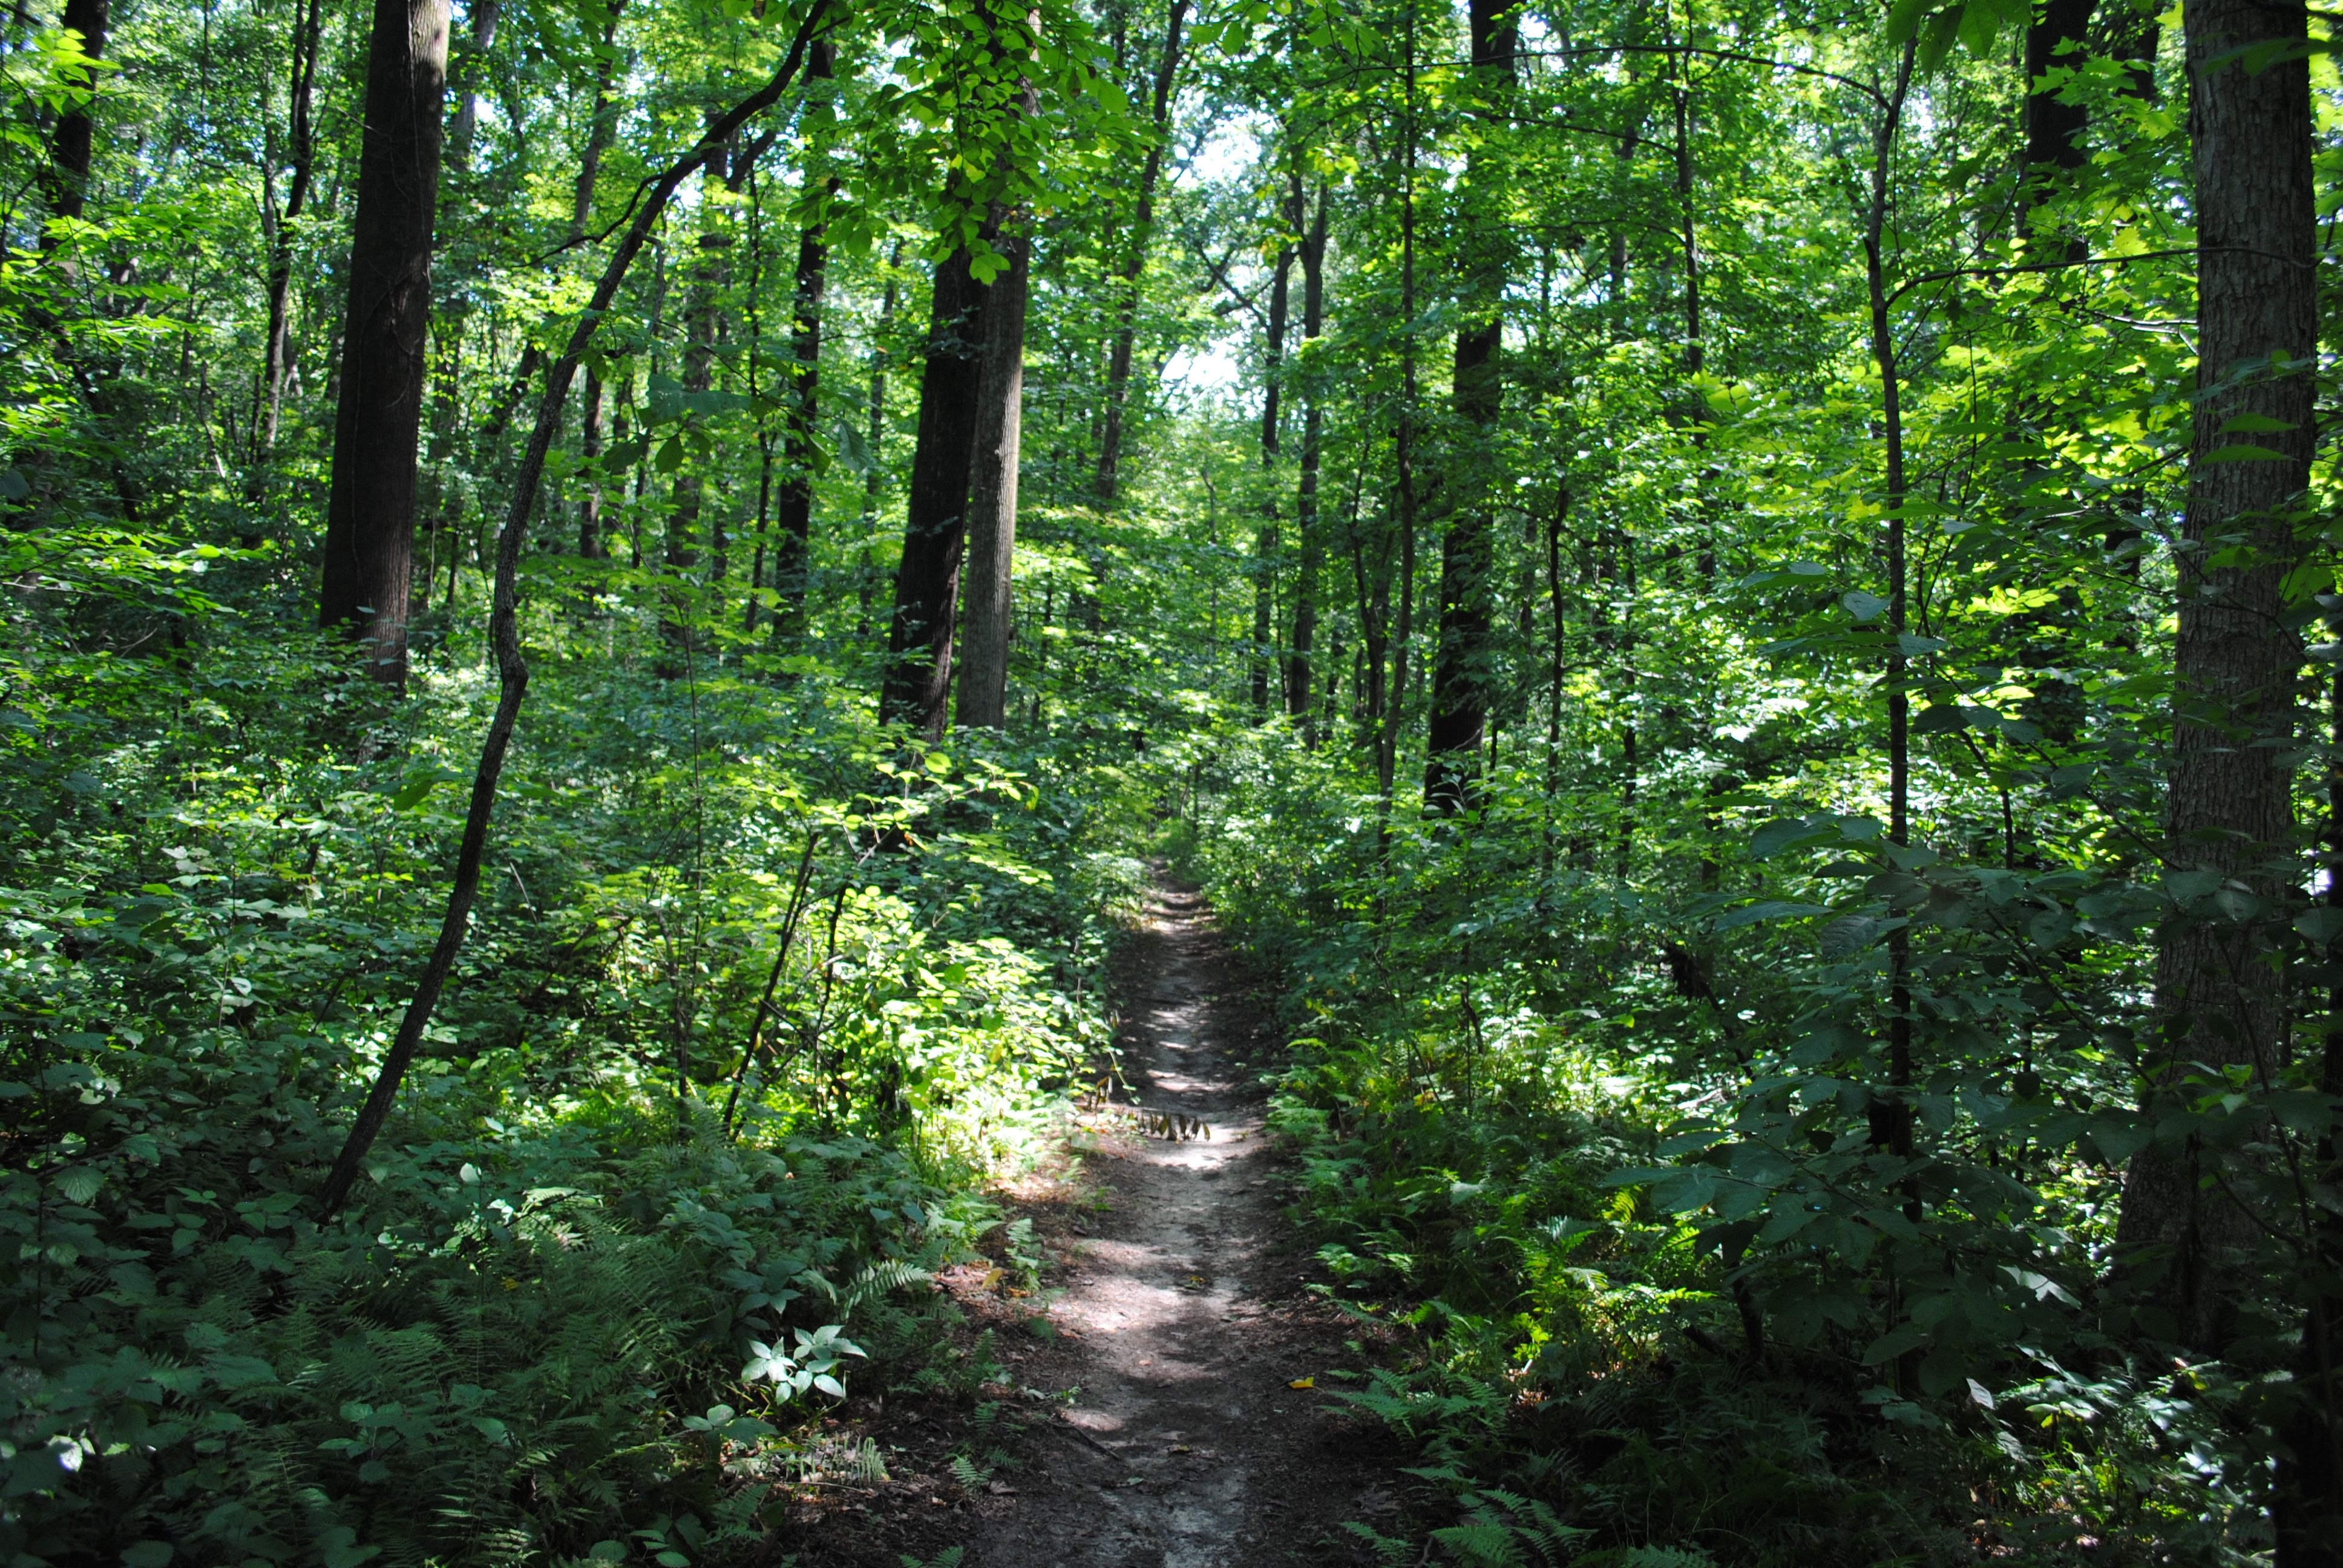 A very narrow path in Sadsbury Woods Preserve of the Natural Lands